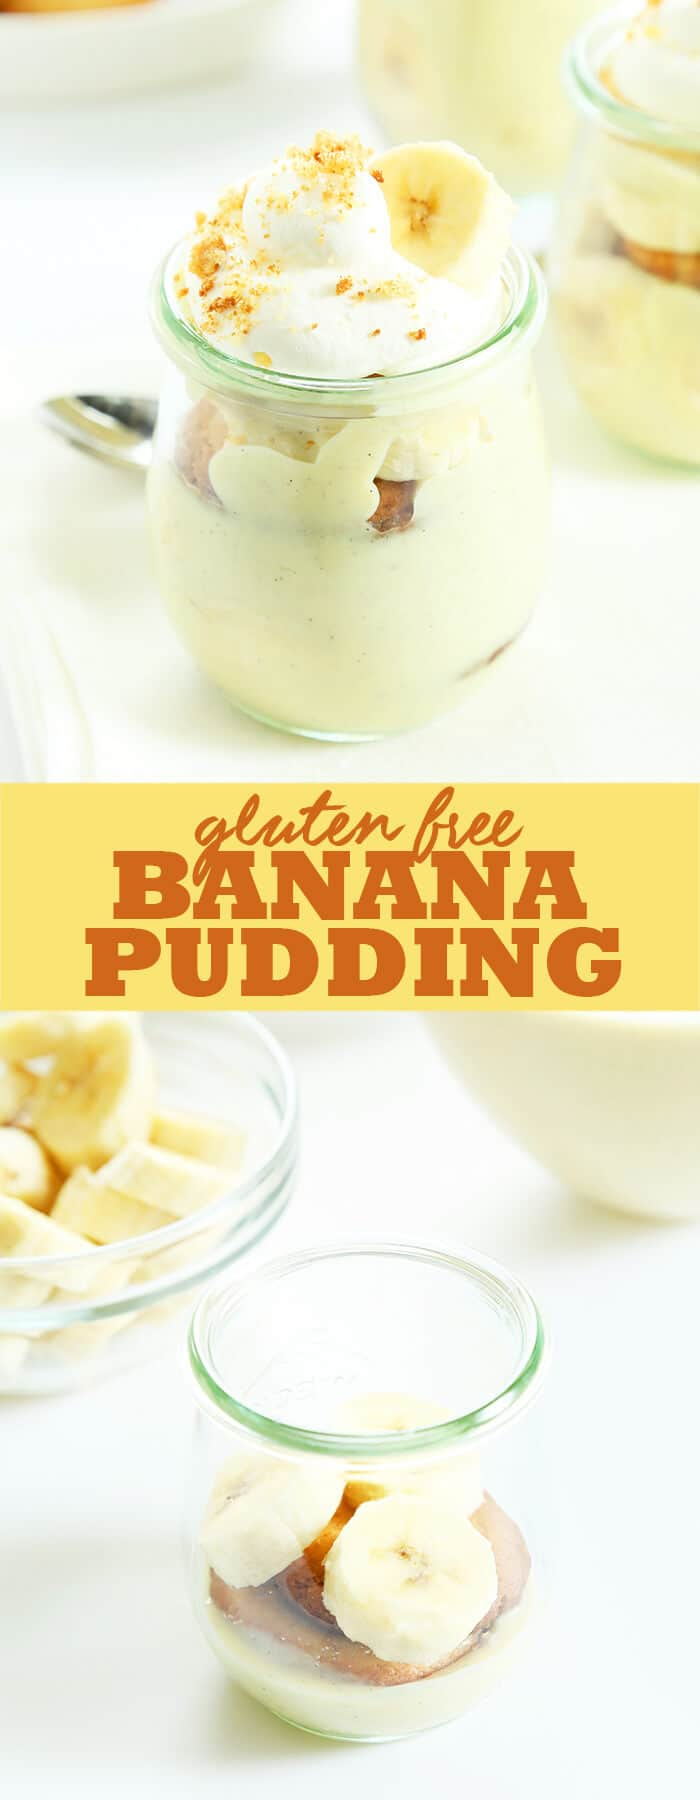 This gluten free banana pudding takes a classic Southern dessert to another level with banana puree cooked right into the smooth, creamy pudding. Make your own GF vanilla wafers, or use store bought for the perfect nostalgic dessert! https://glutenfreeonashoestring.com/gluten-free-banana-pudding/